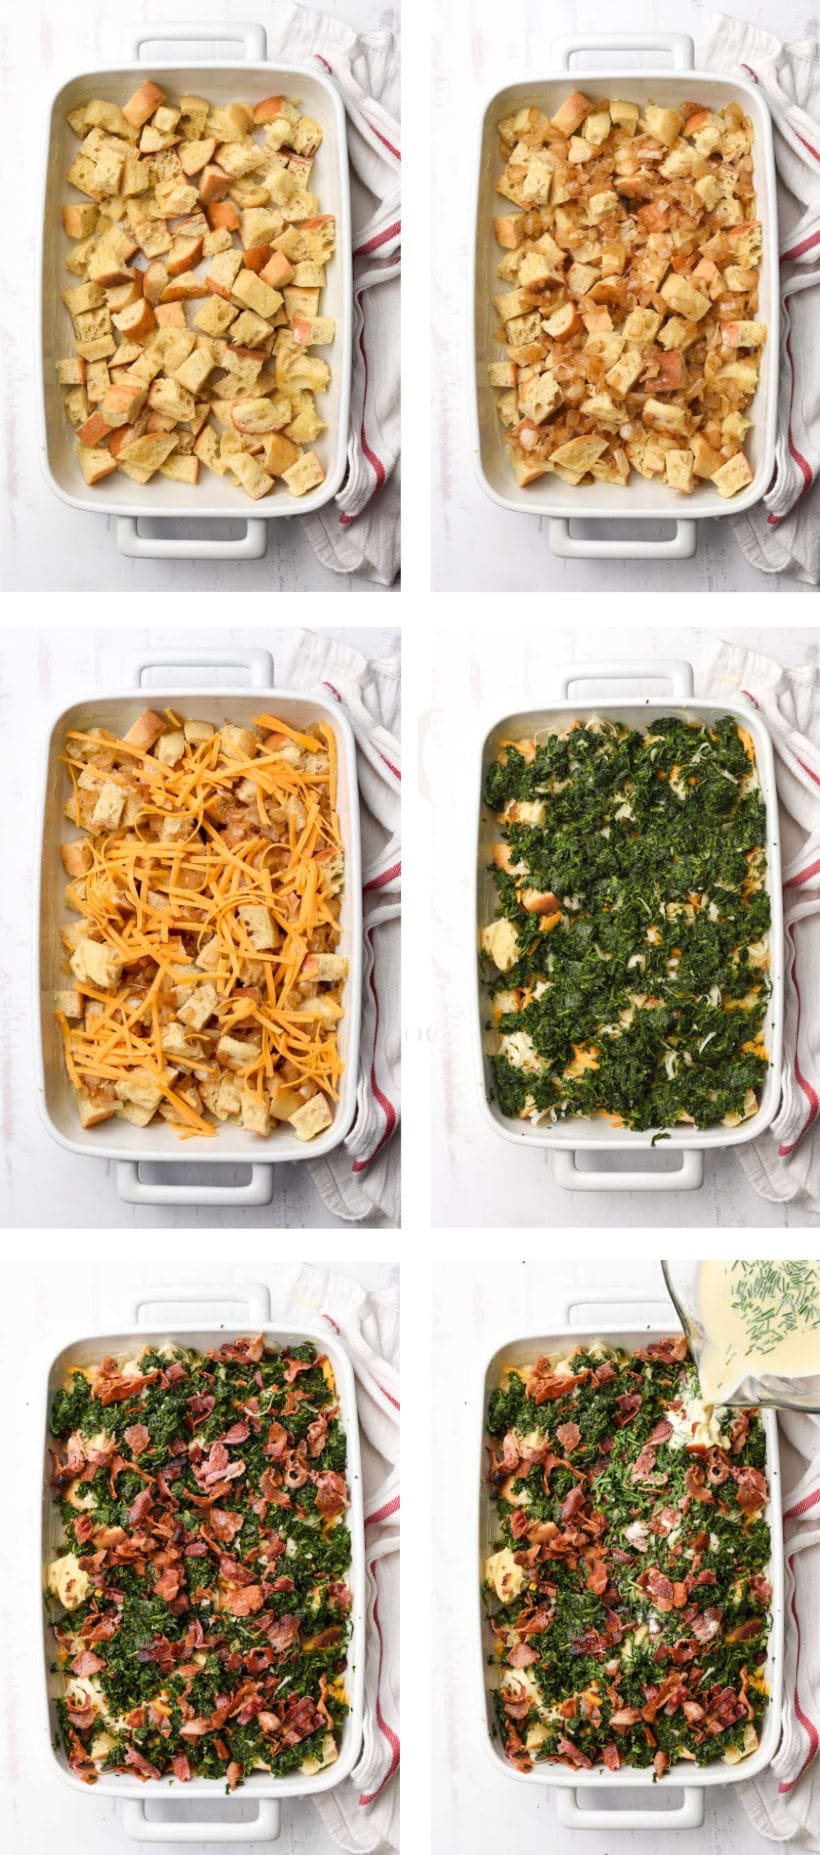 step by step photos for layering an overnight breakfast casserole